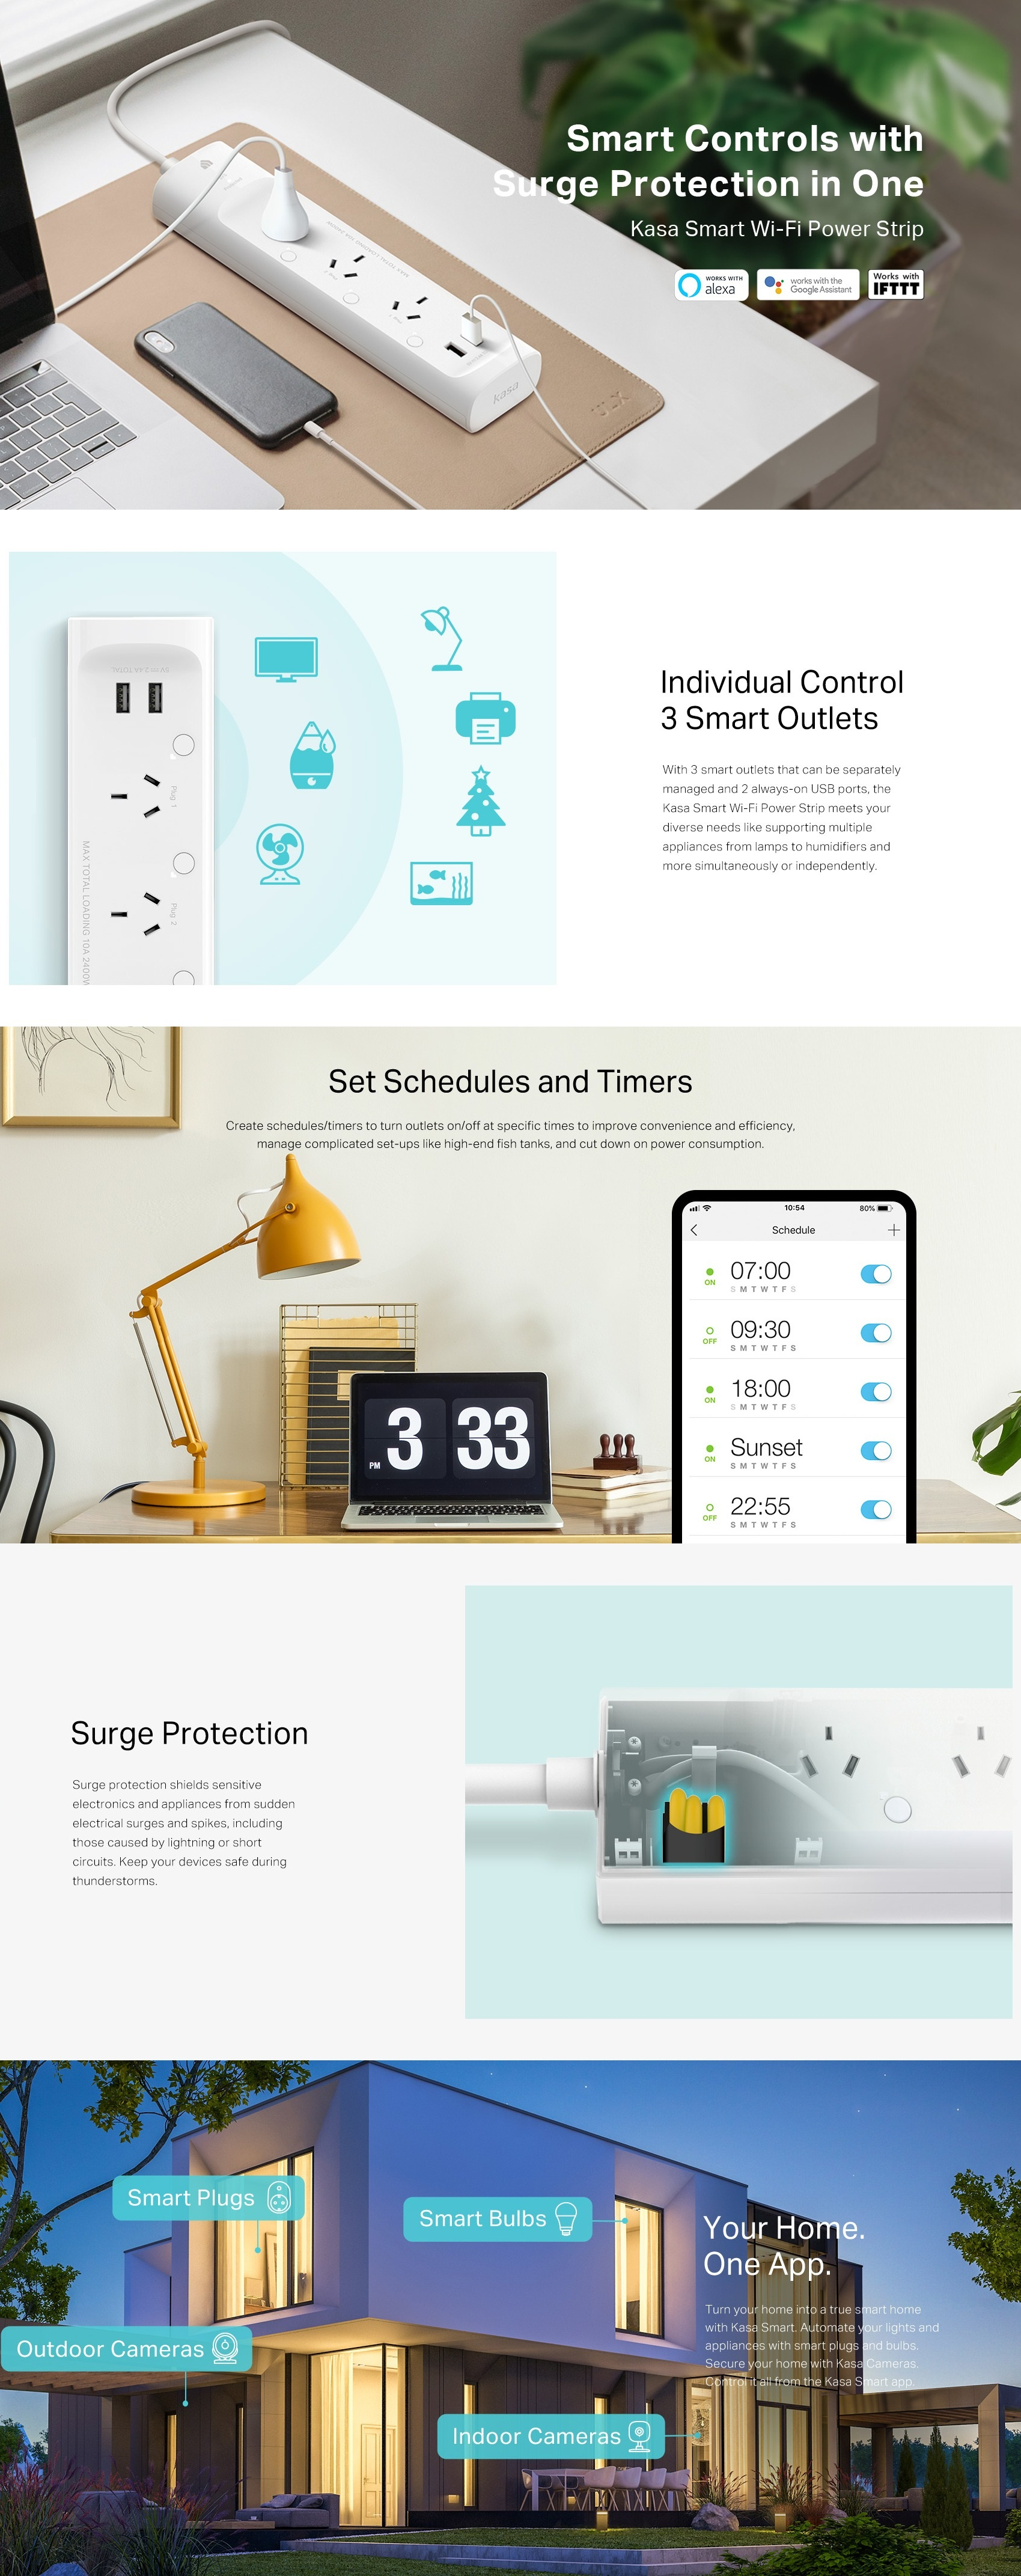 A large marketing image providing additional information about the product TP-LINK Kasa Smart Wi-Fi 3-Outlet Power Strip - Additional alt info not provided